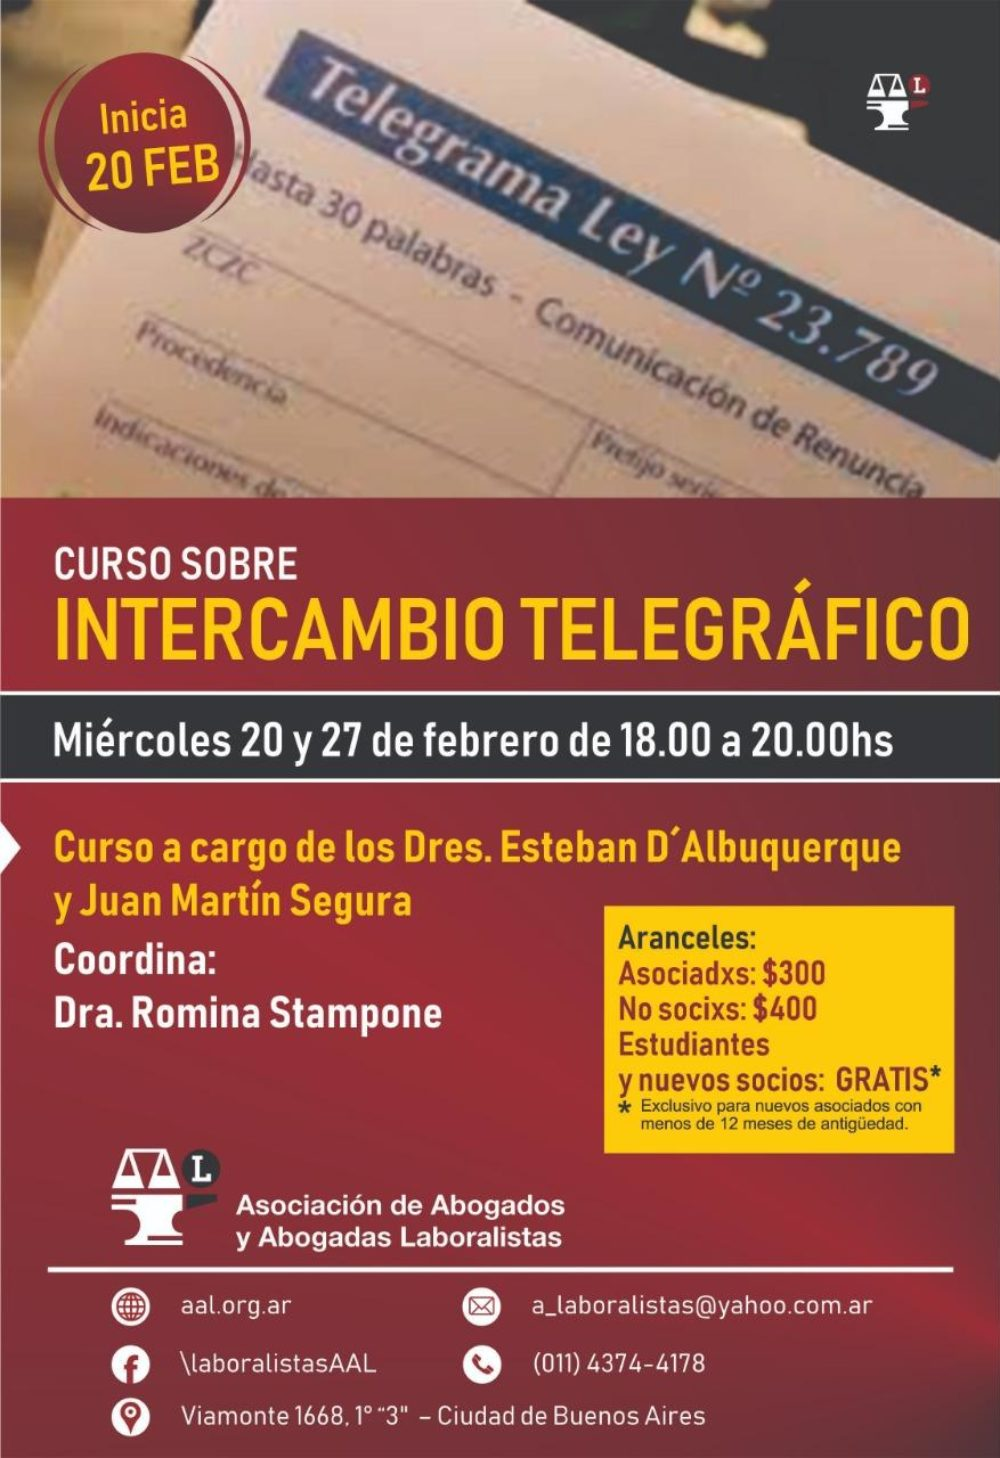 Curso de intercambio telegráfico